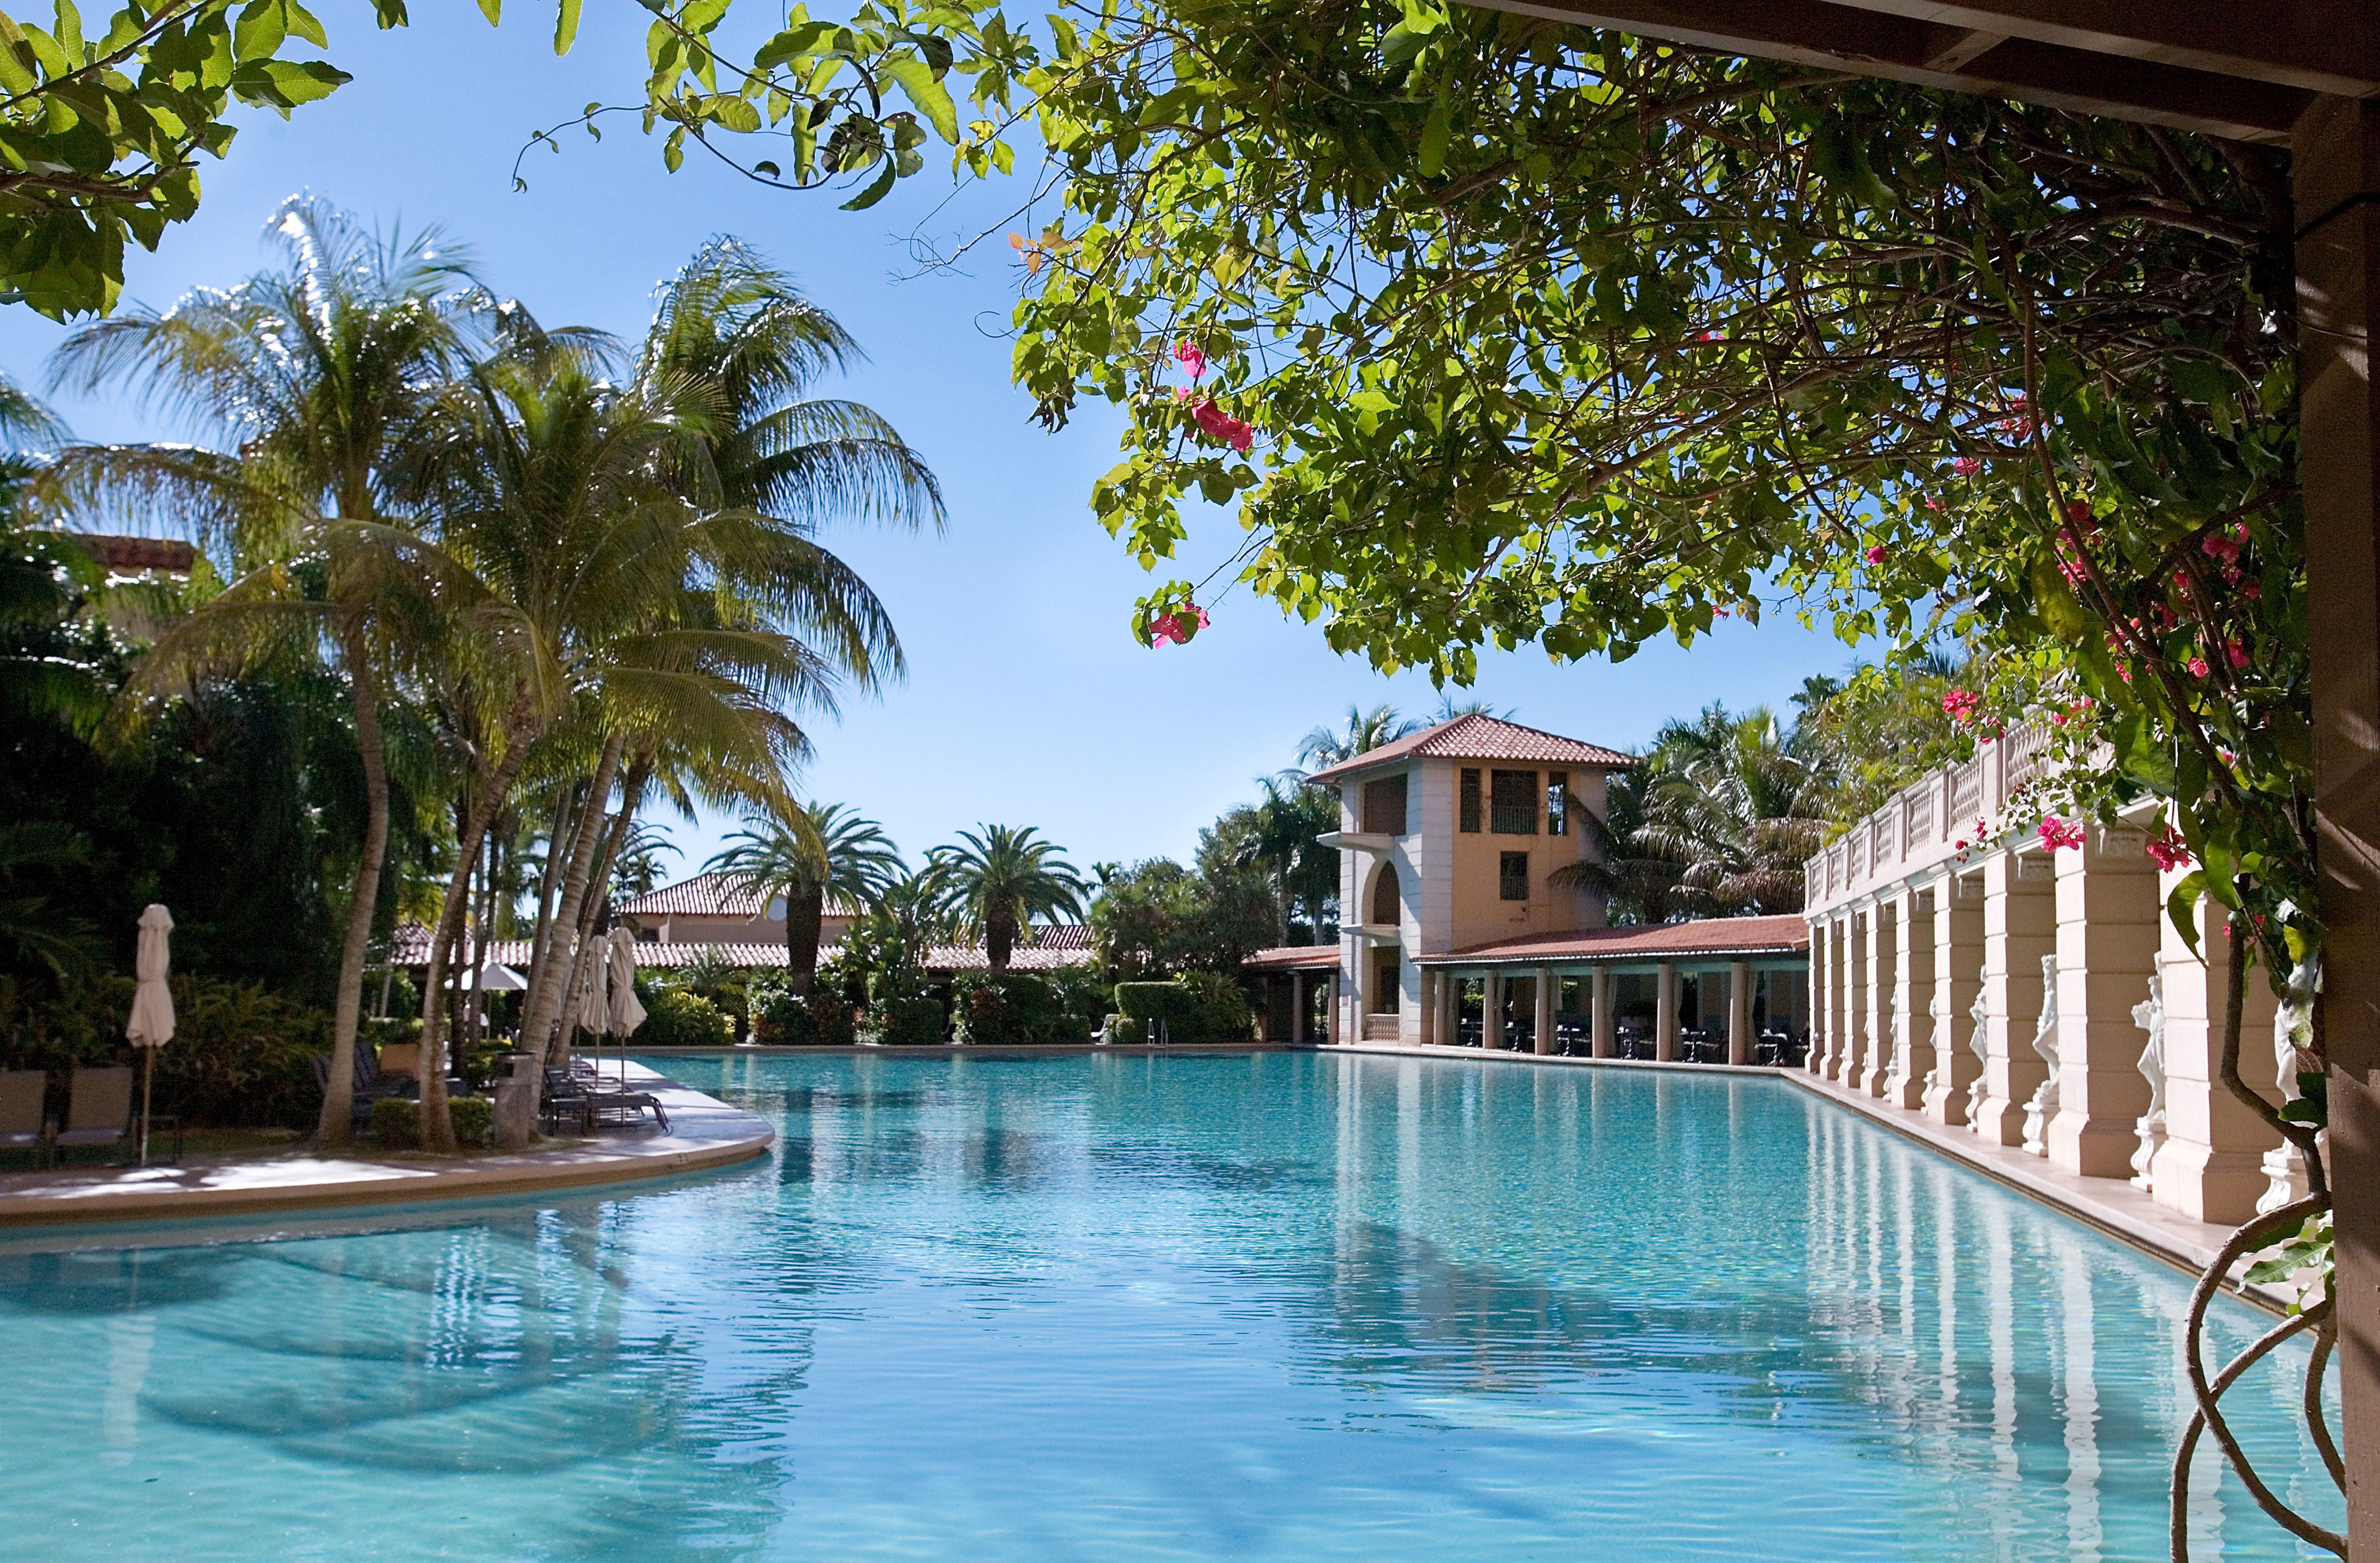 biltmore hotel in coral gables - Google Search